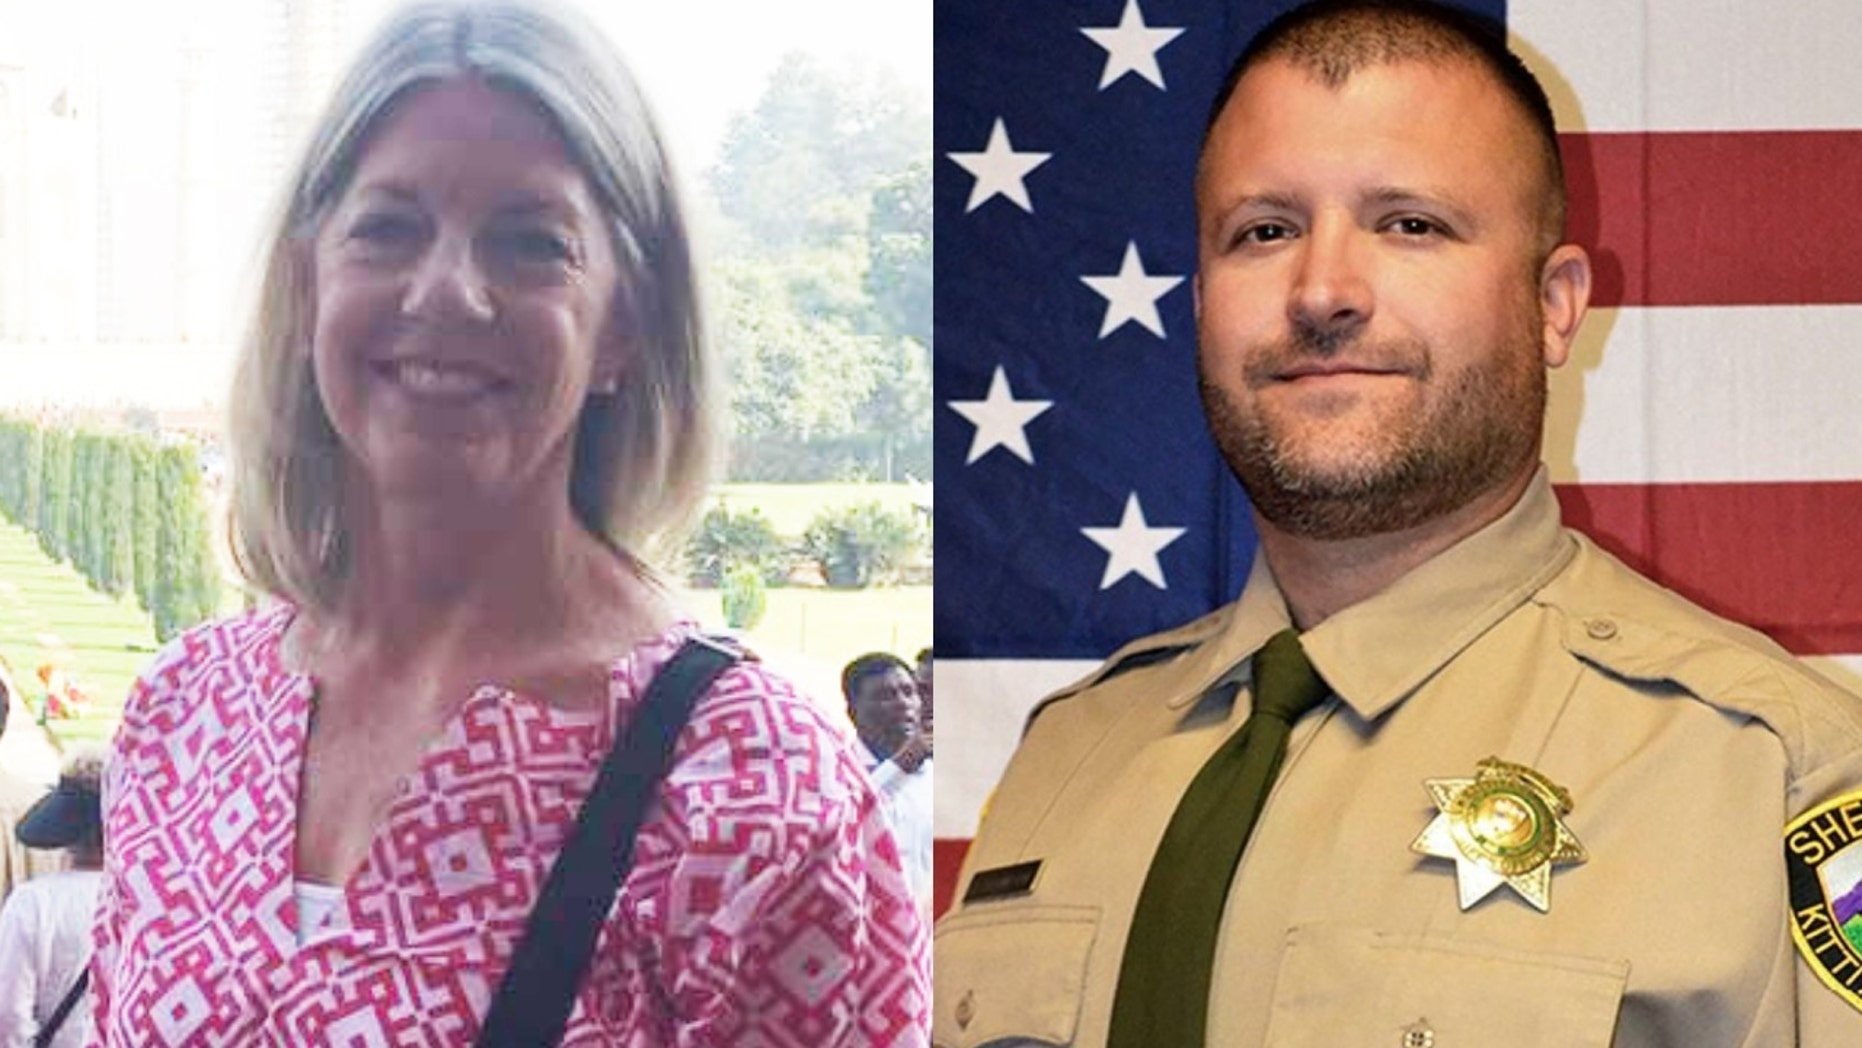 Bambi Larson, 59, was violently killed in her San Jose, Calif., home earlier this year. Sheriff's Deputy Ryan Thompson, 42, died this week in a shootout. Both deaths were attributed to suspects reported to be illegal immigrants.